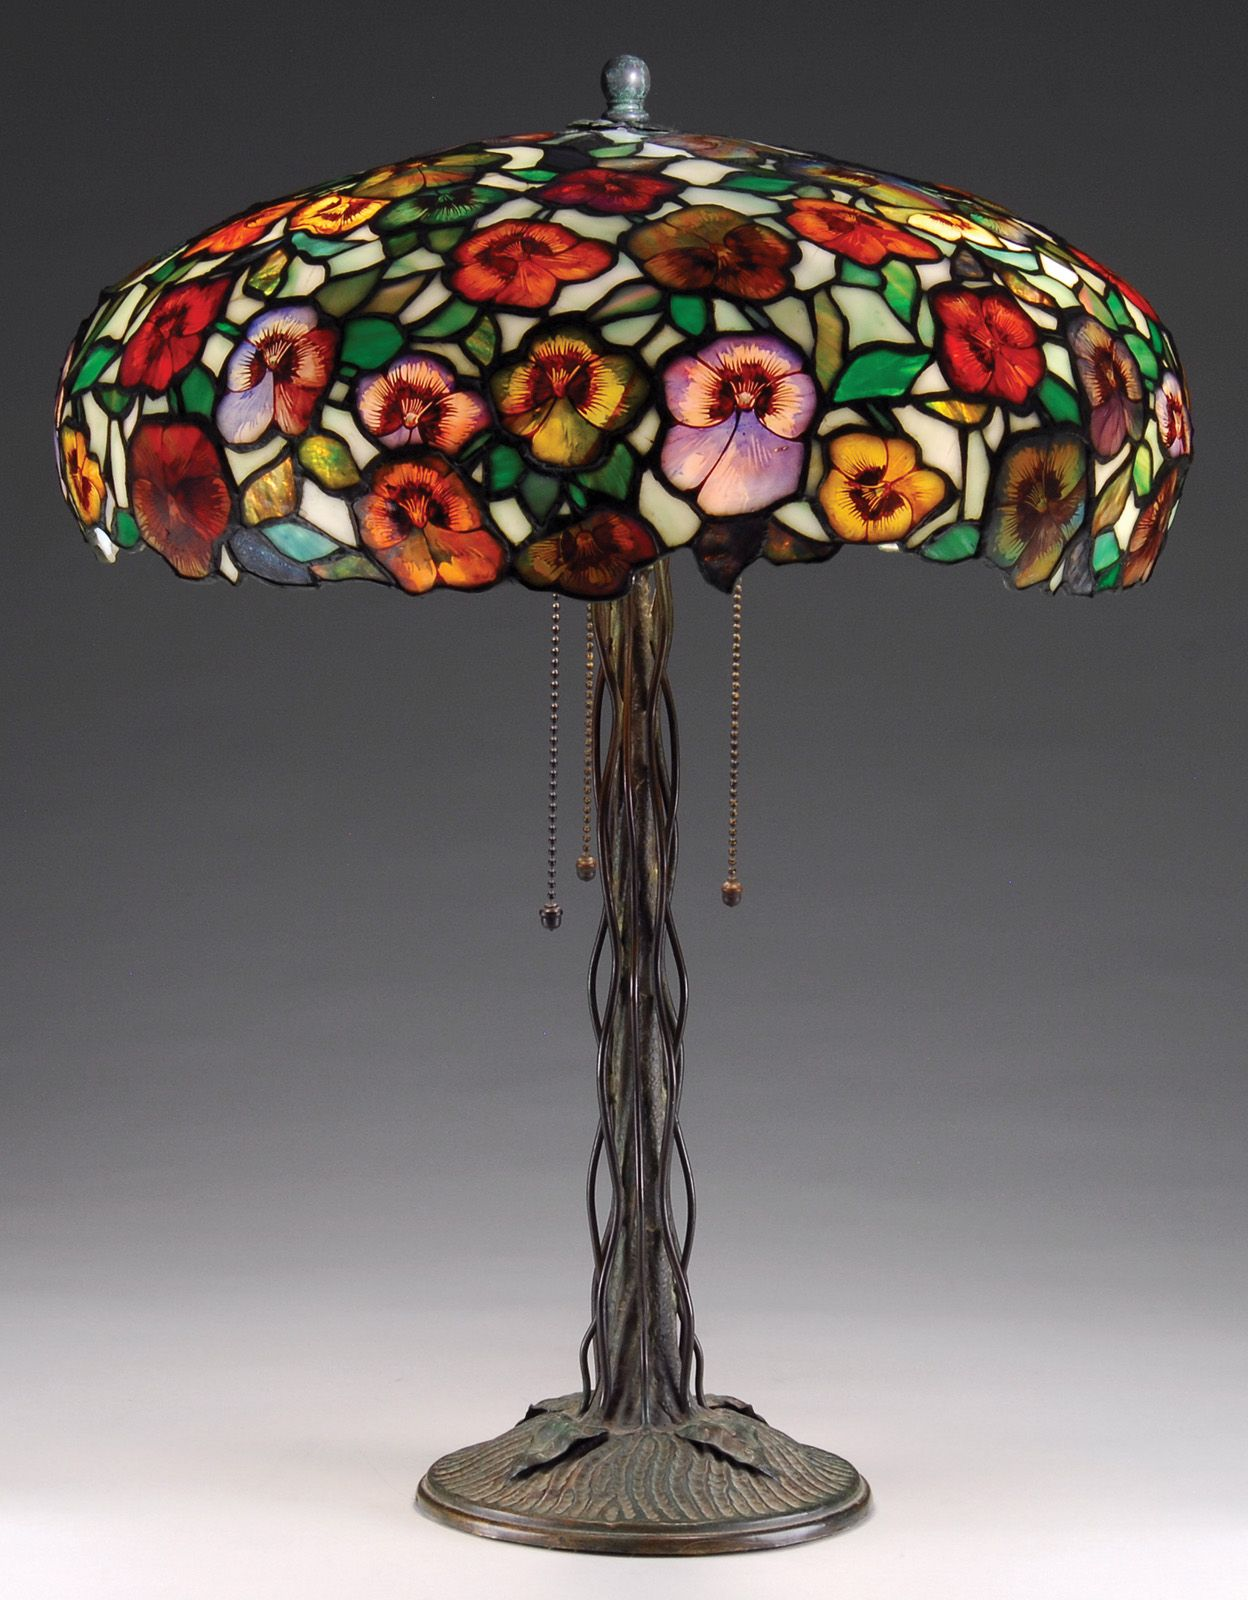 John Morgan & Sons pansy table lamp with a field of multihued flowers on a climbing vine base